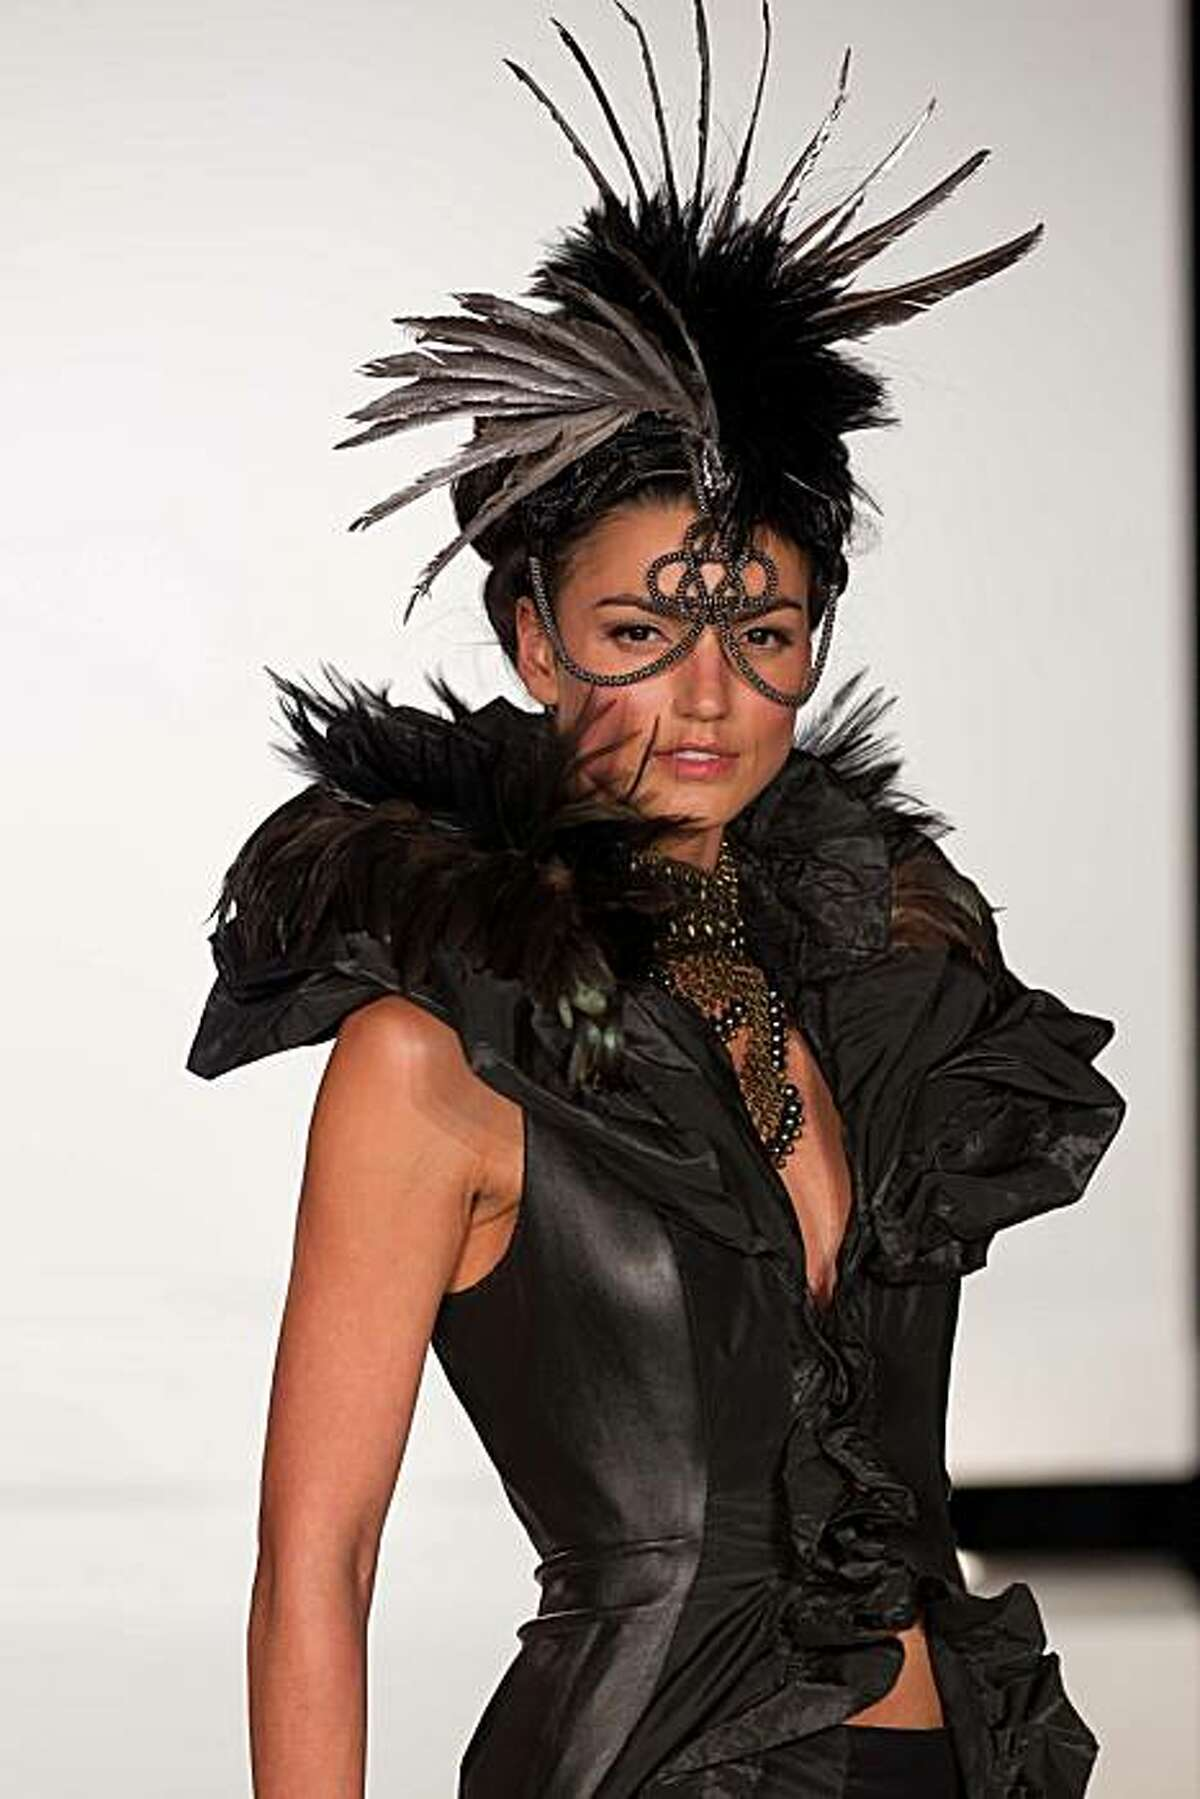 A runway image from the FYMO